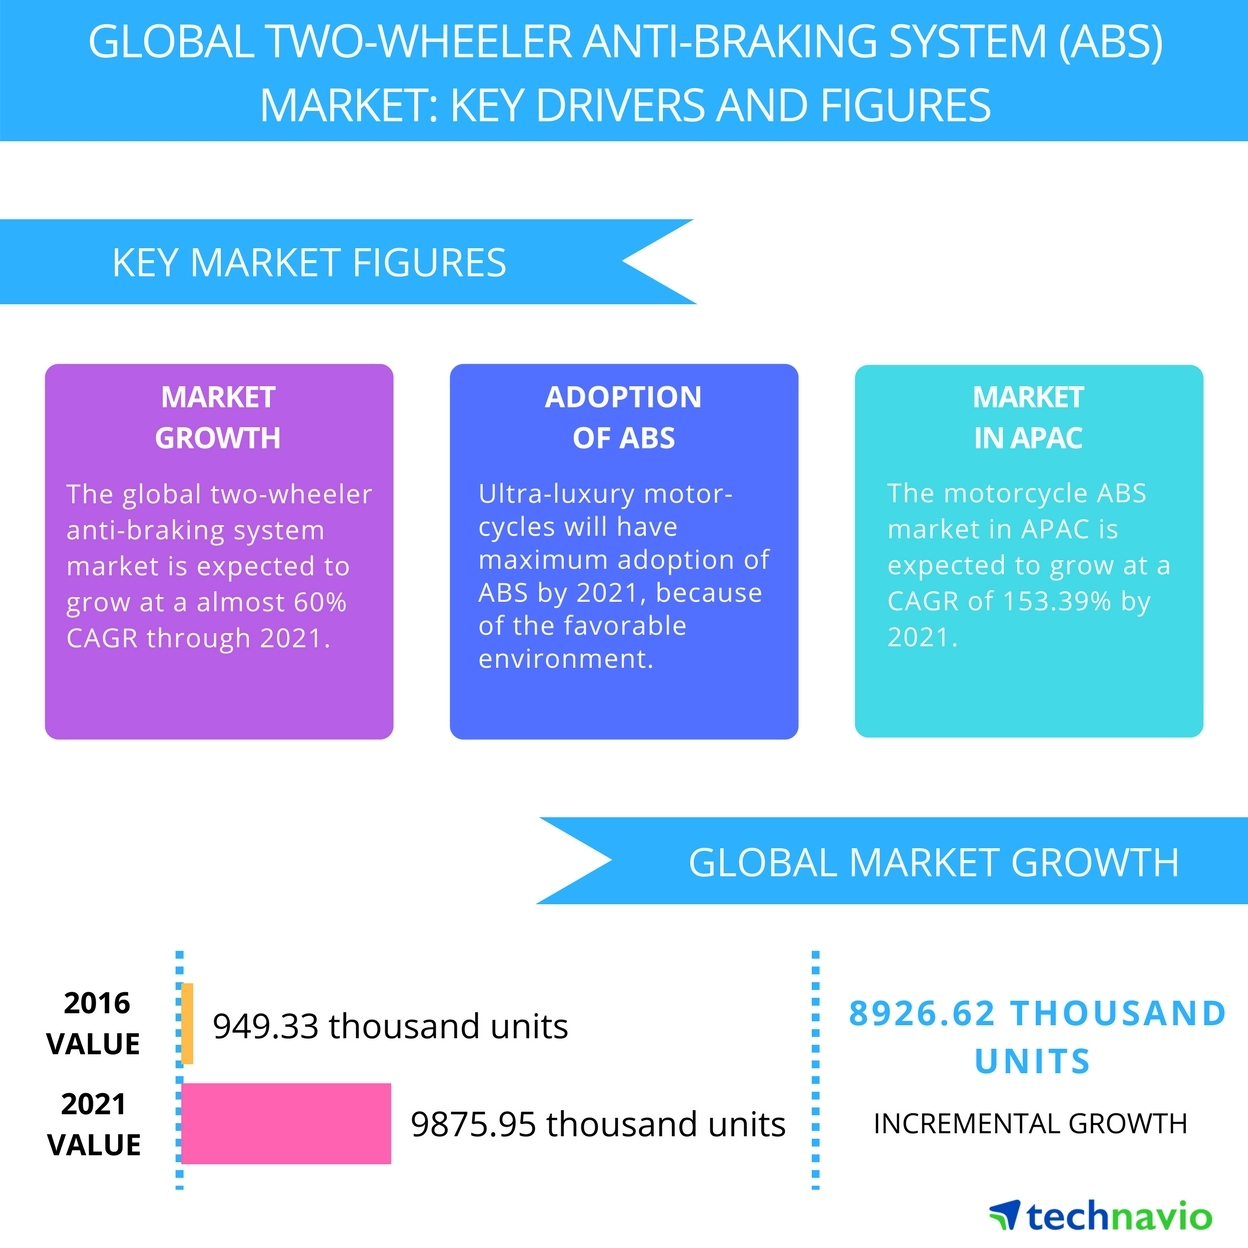 Technavio has published a new report on the global two-wheeler anti-braking system (ABS) market from 2017-2021. (Graphic: Business Wire)